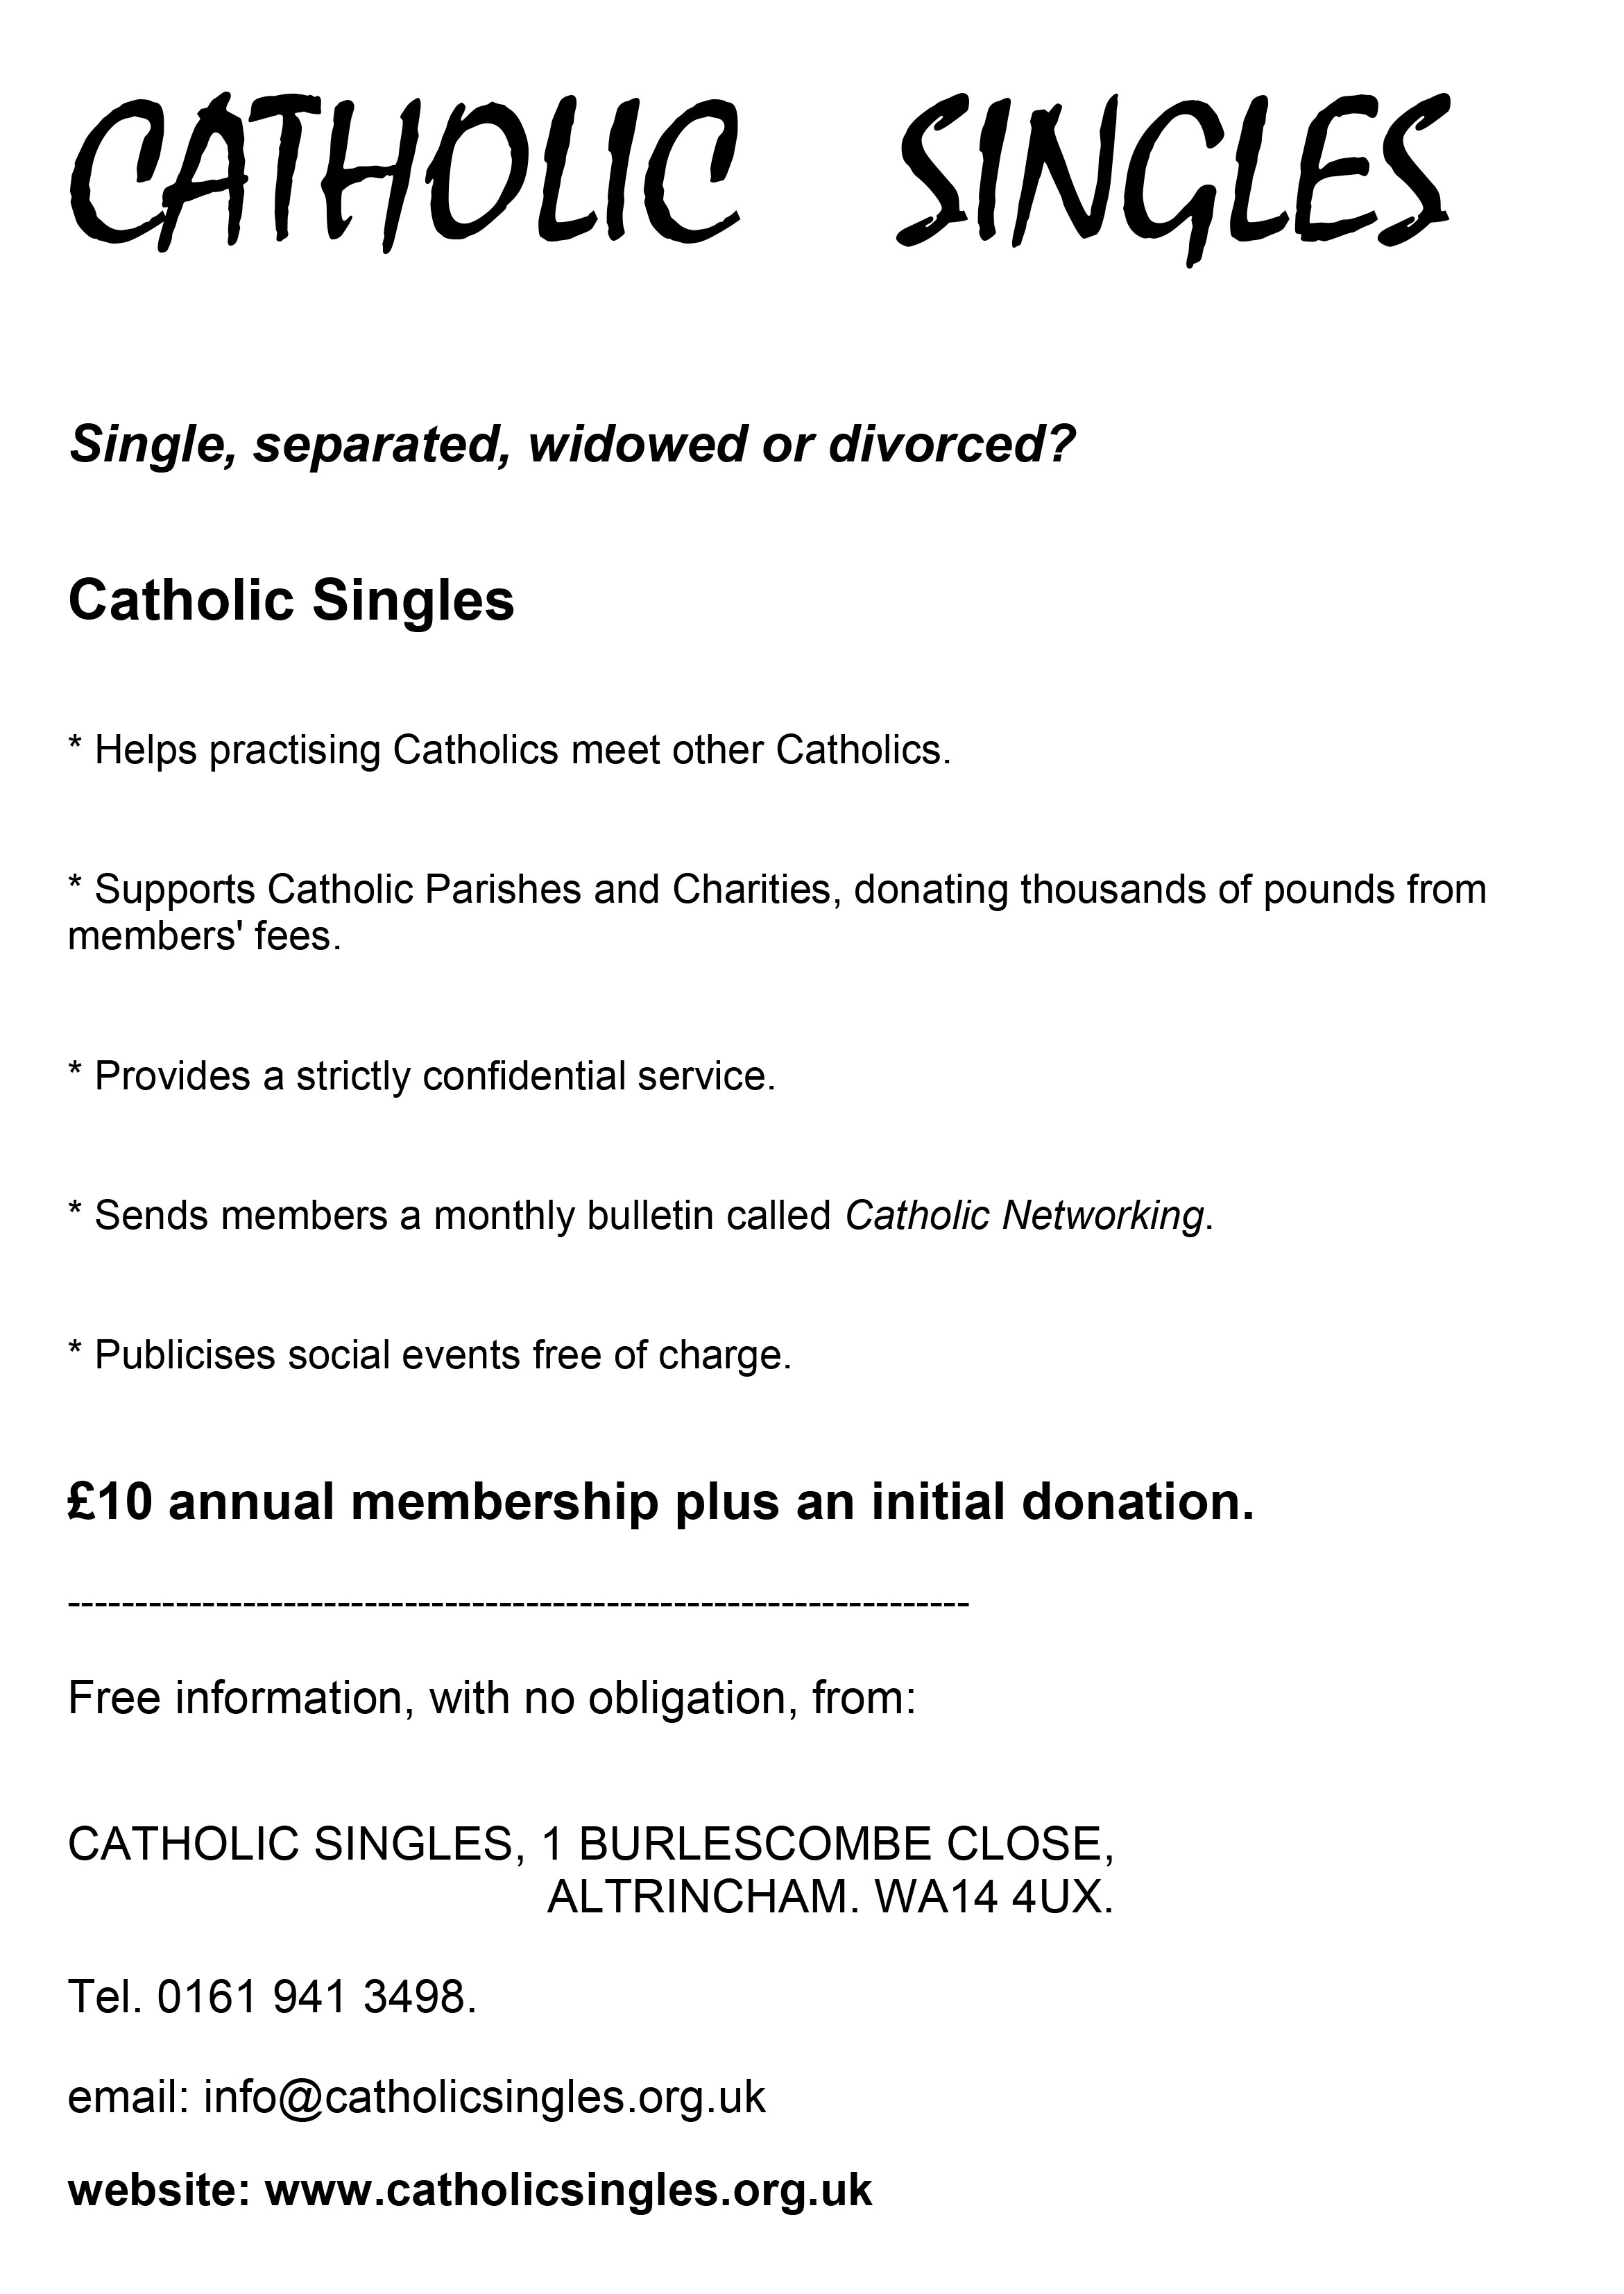 CatholicSingles